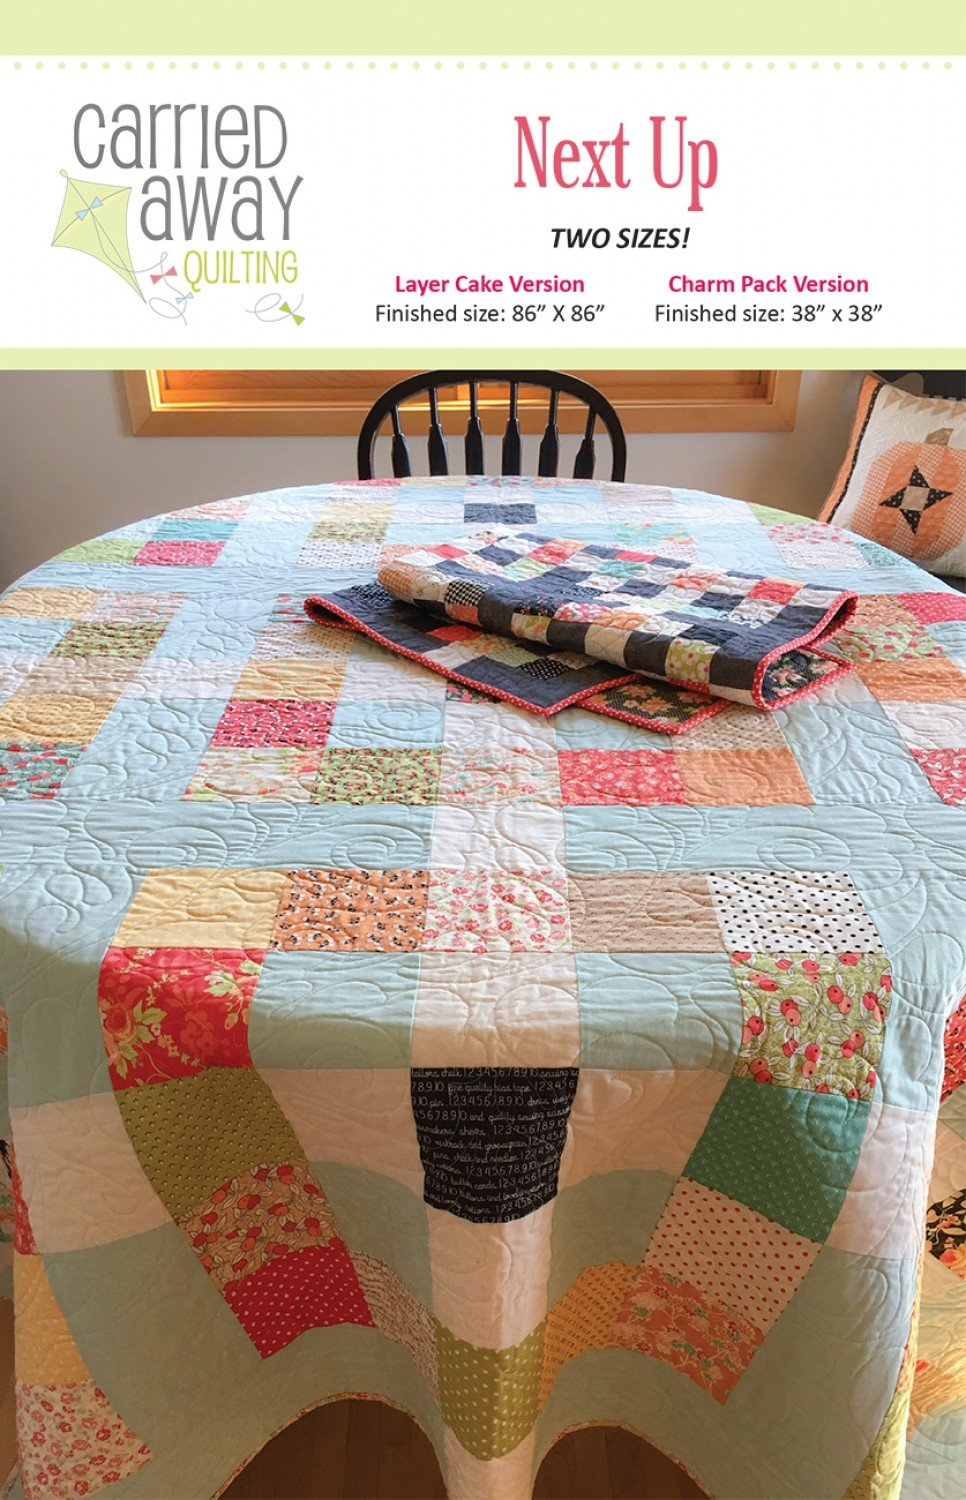 Next Up By Taunja Kelvington From Carried Away Quilting